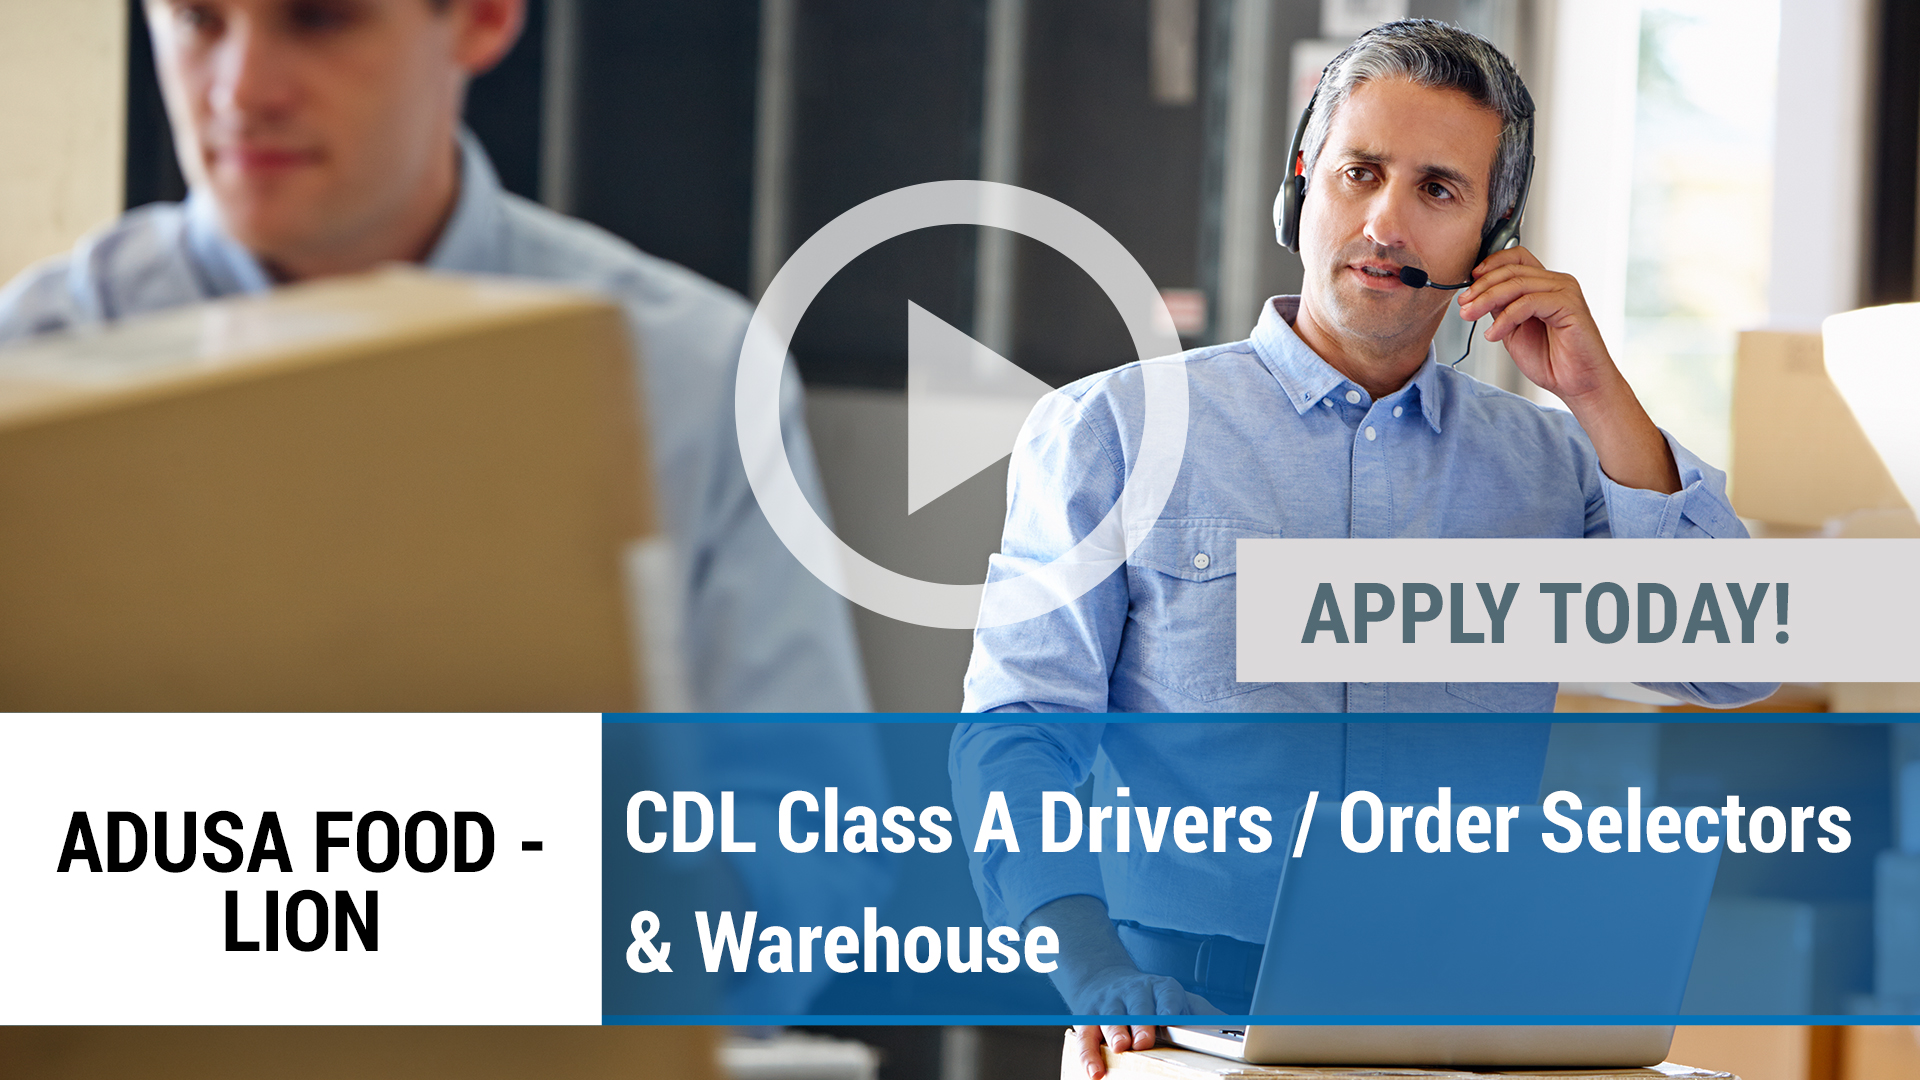 Watch our careers video for available job opening CDL Class A Drivers _ Order Selectors & Warehouse in Greencastle, PA